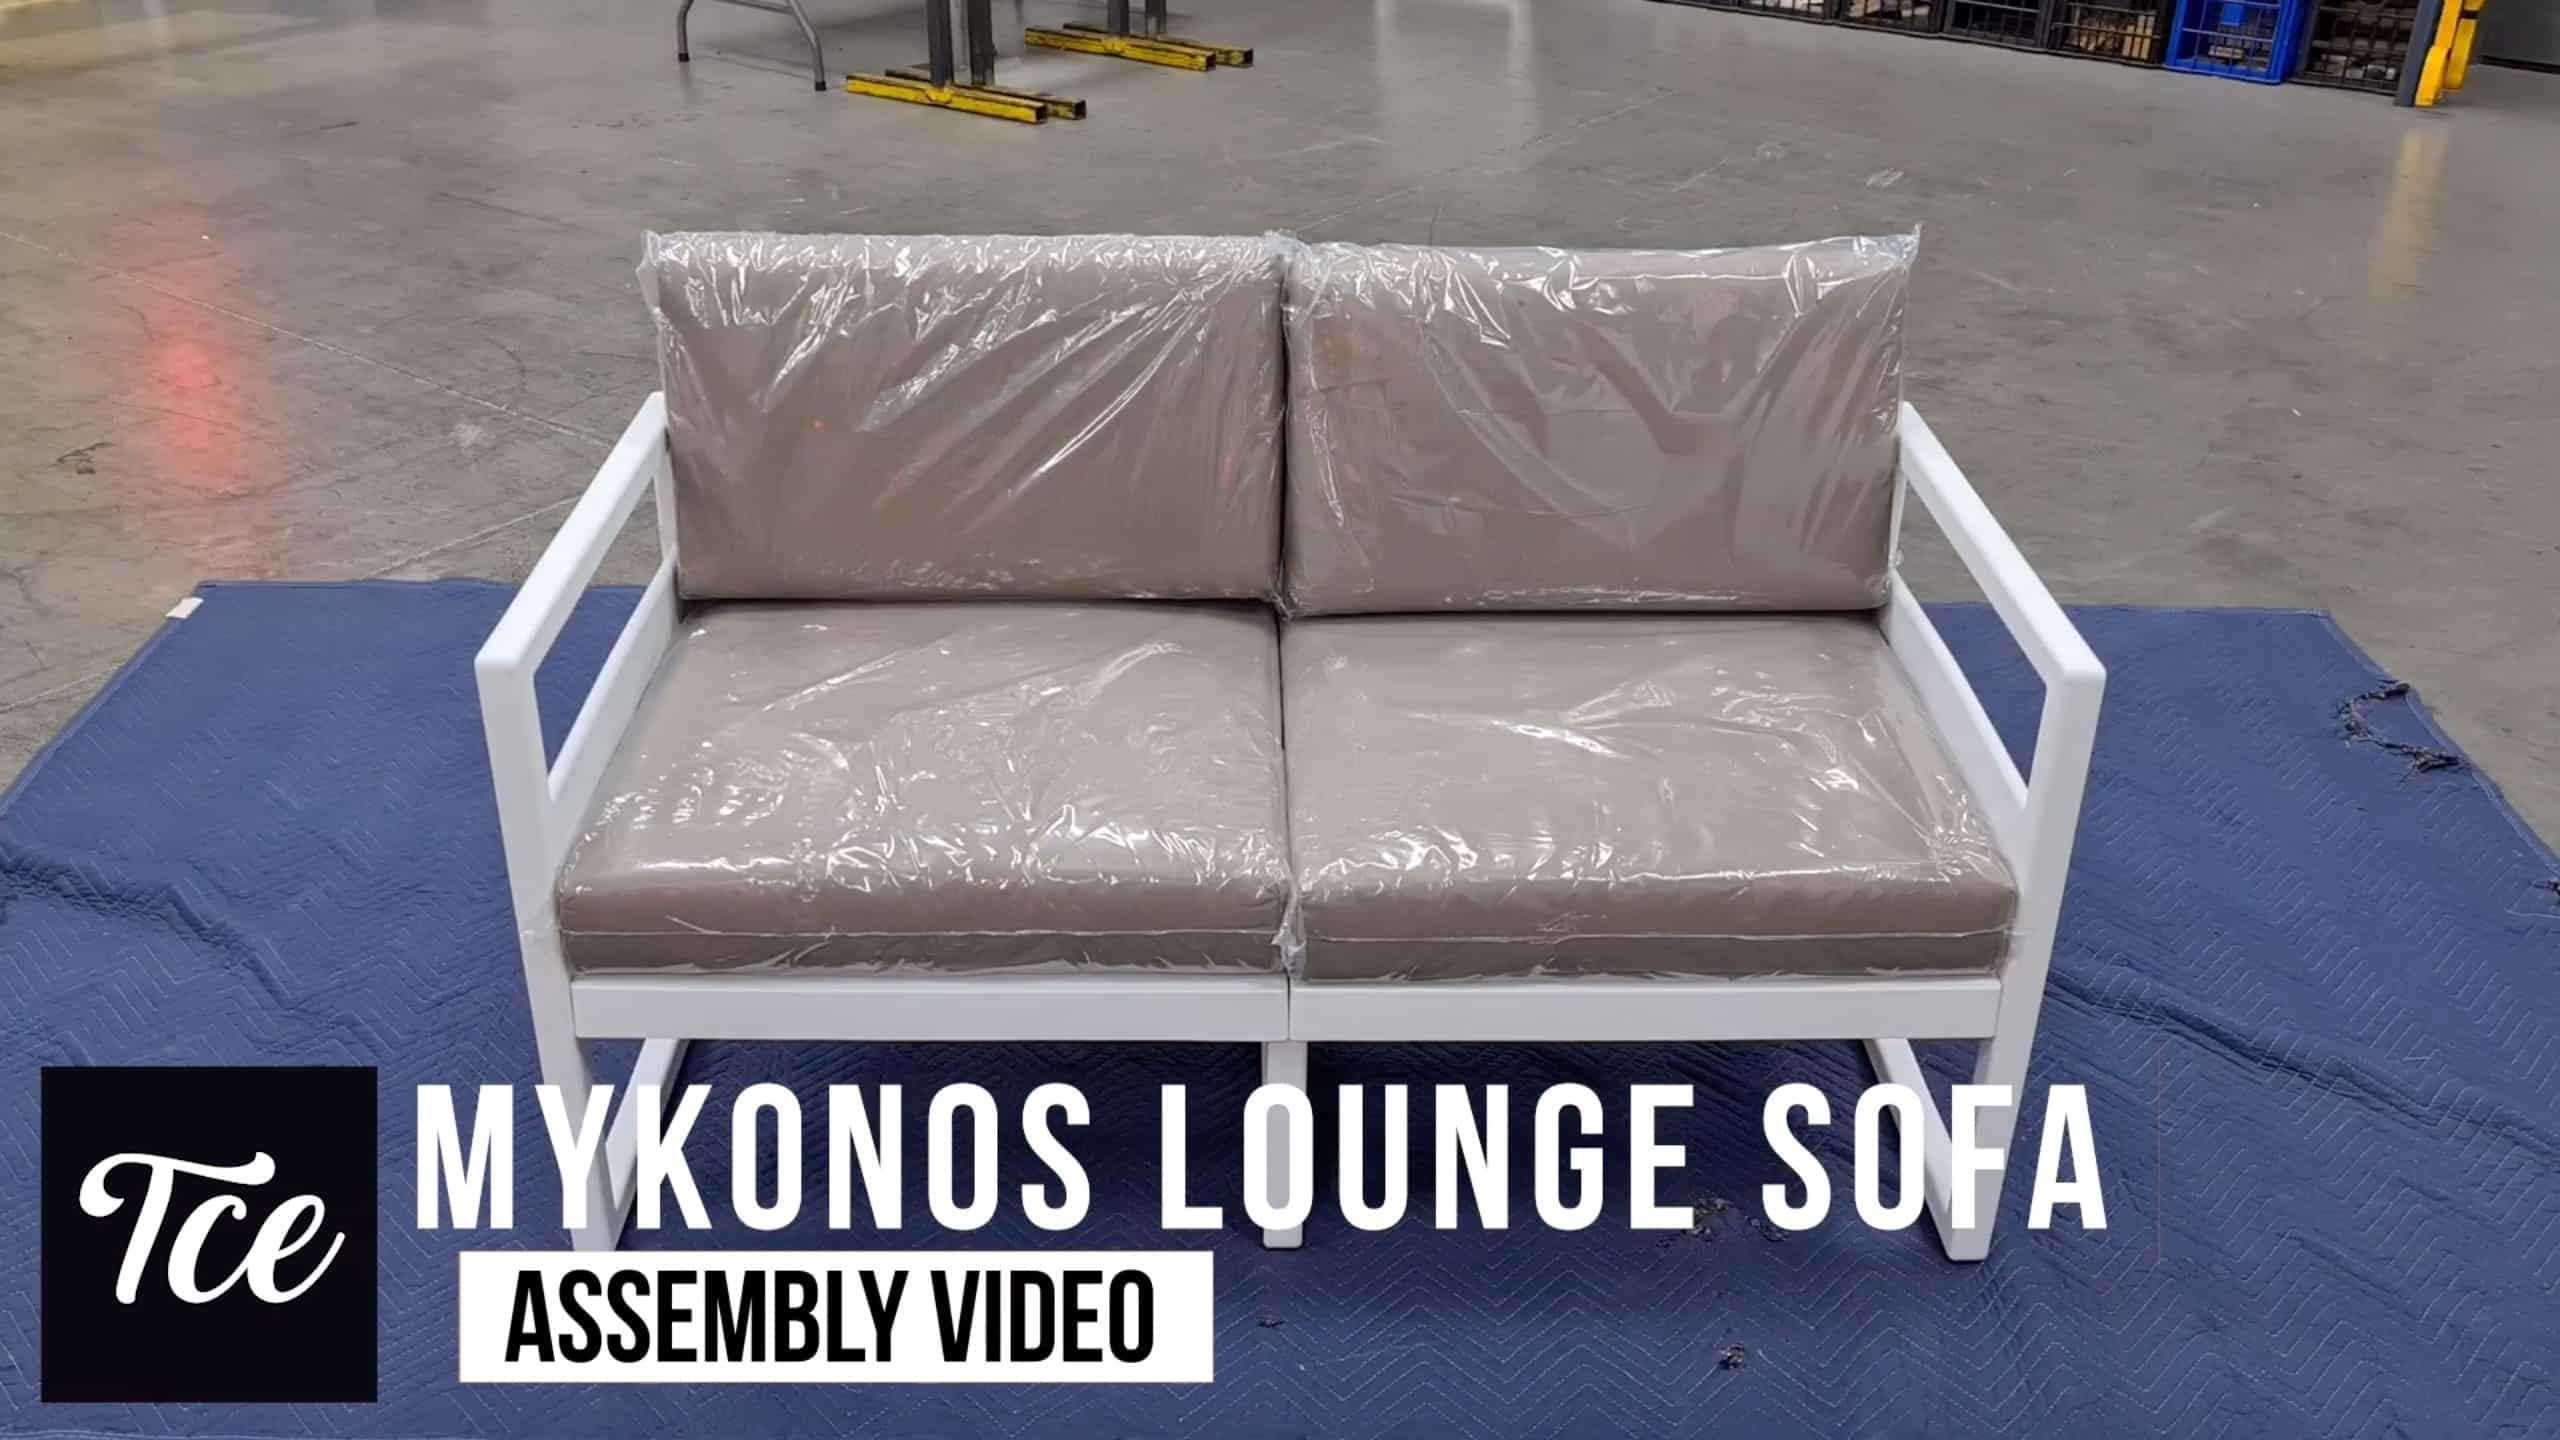 Assembly for the Mykonos Lounge Sofa